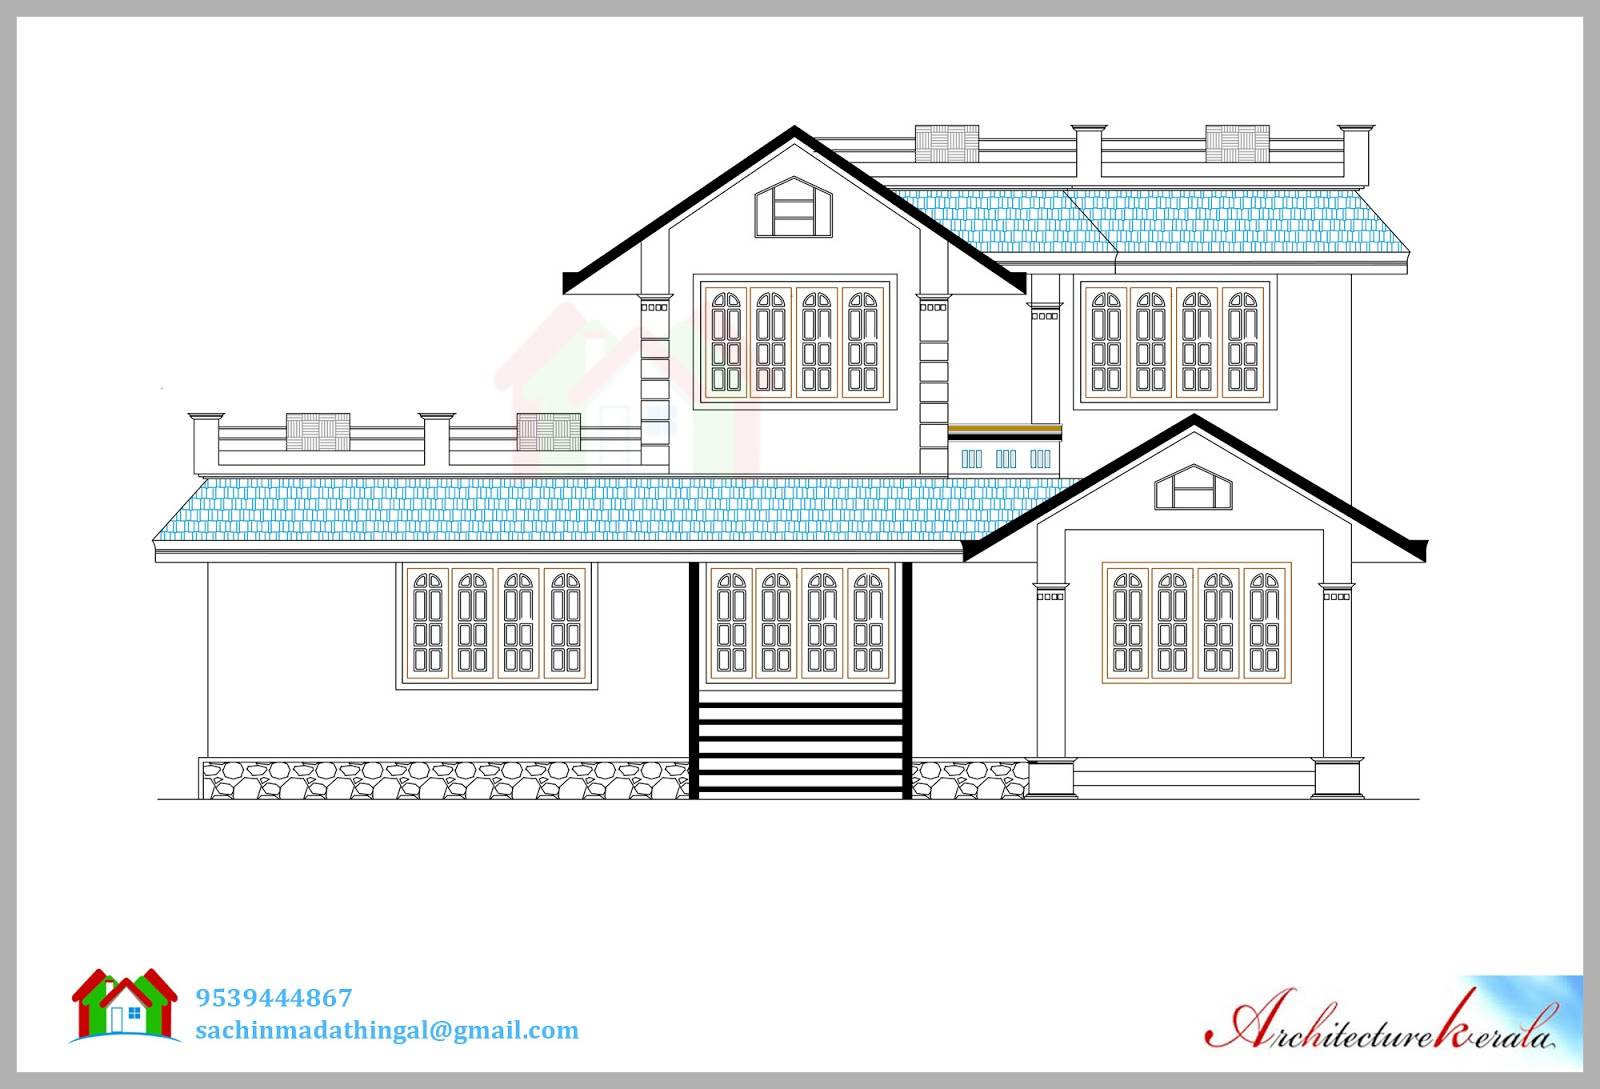 Elevation Plan Photos : Architecture kerala beautiful house elevation with its